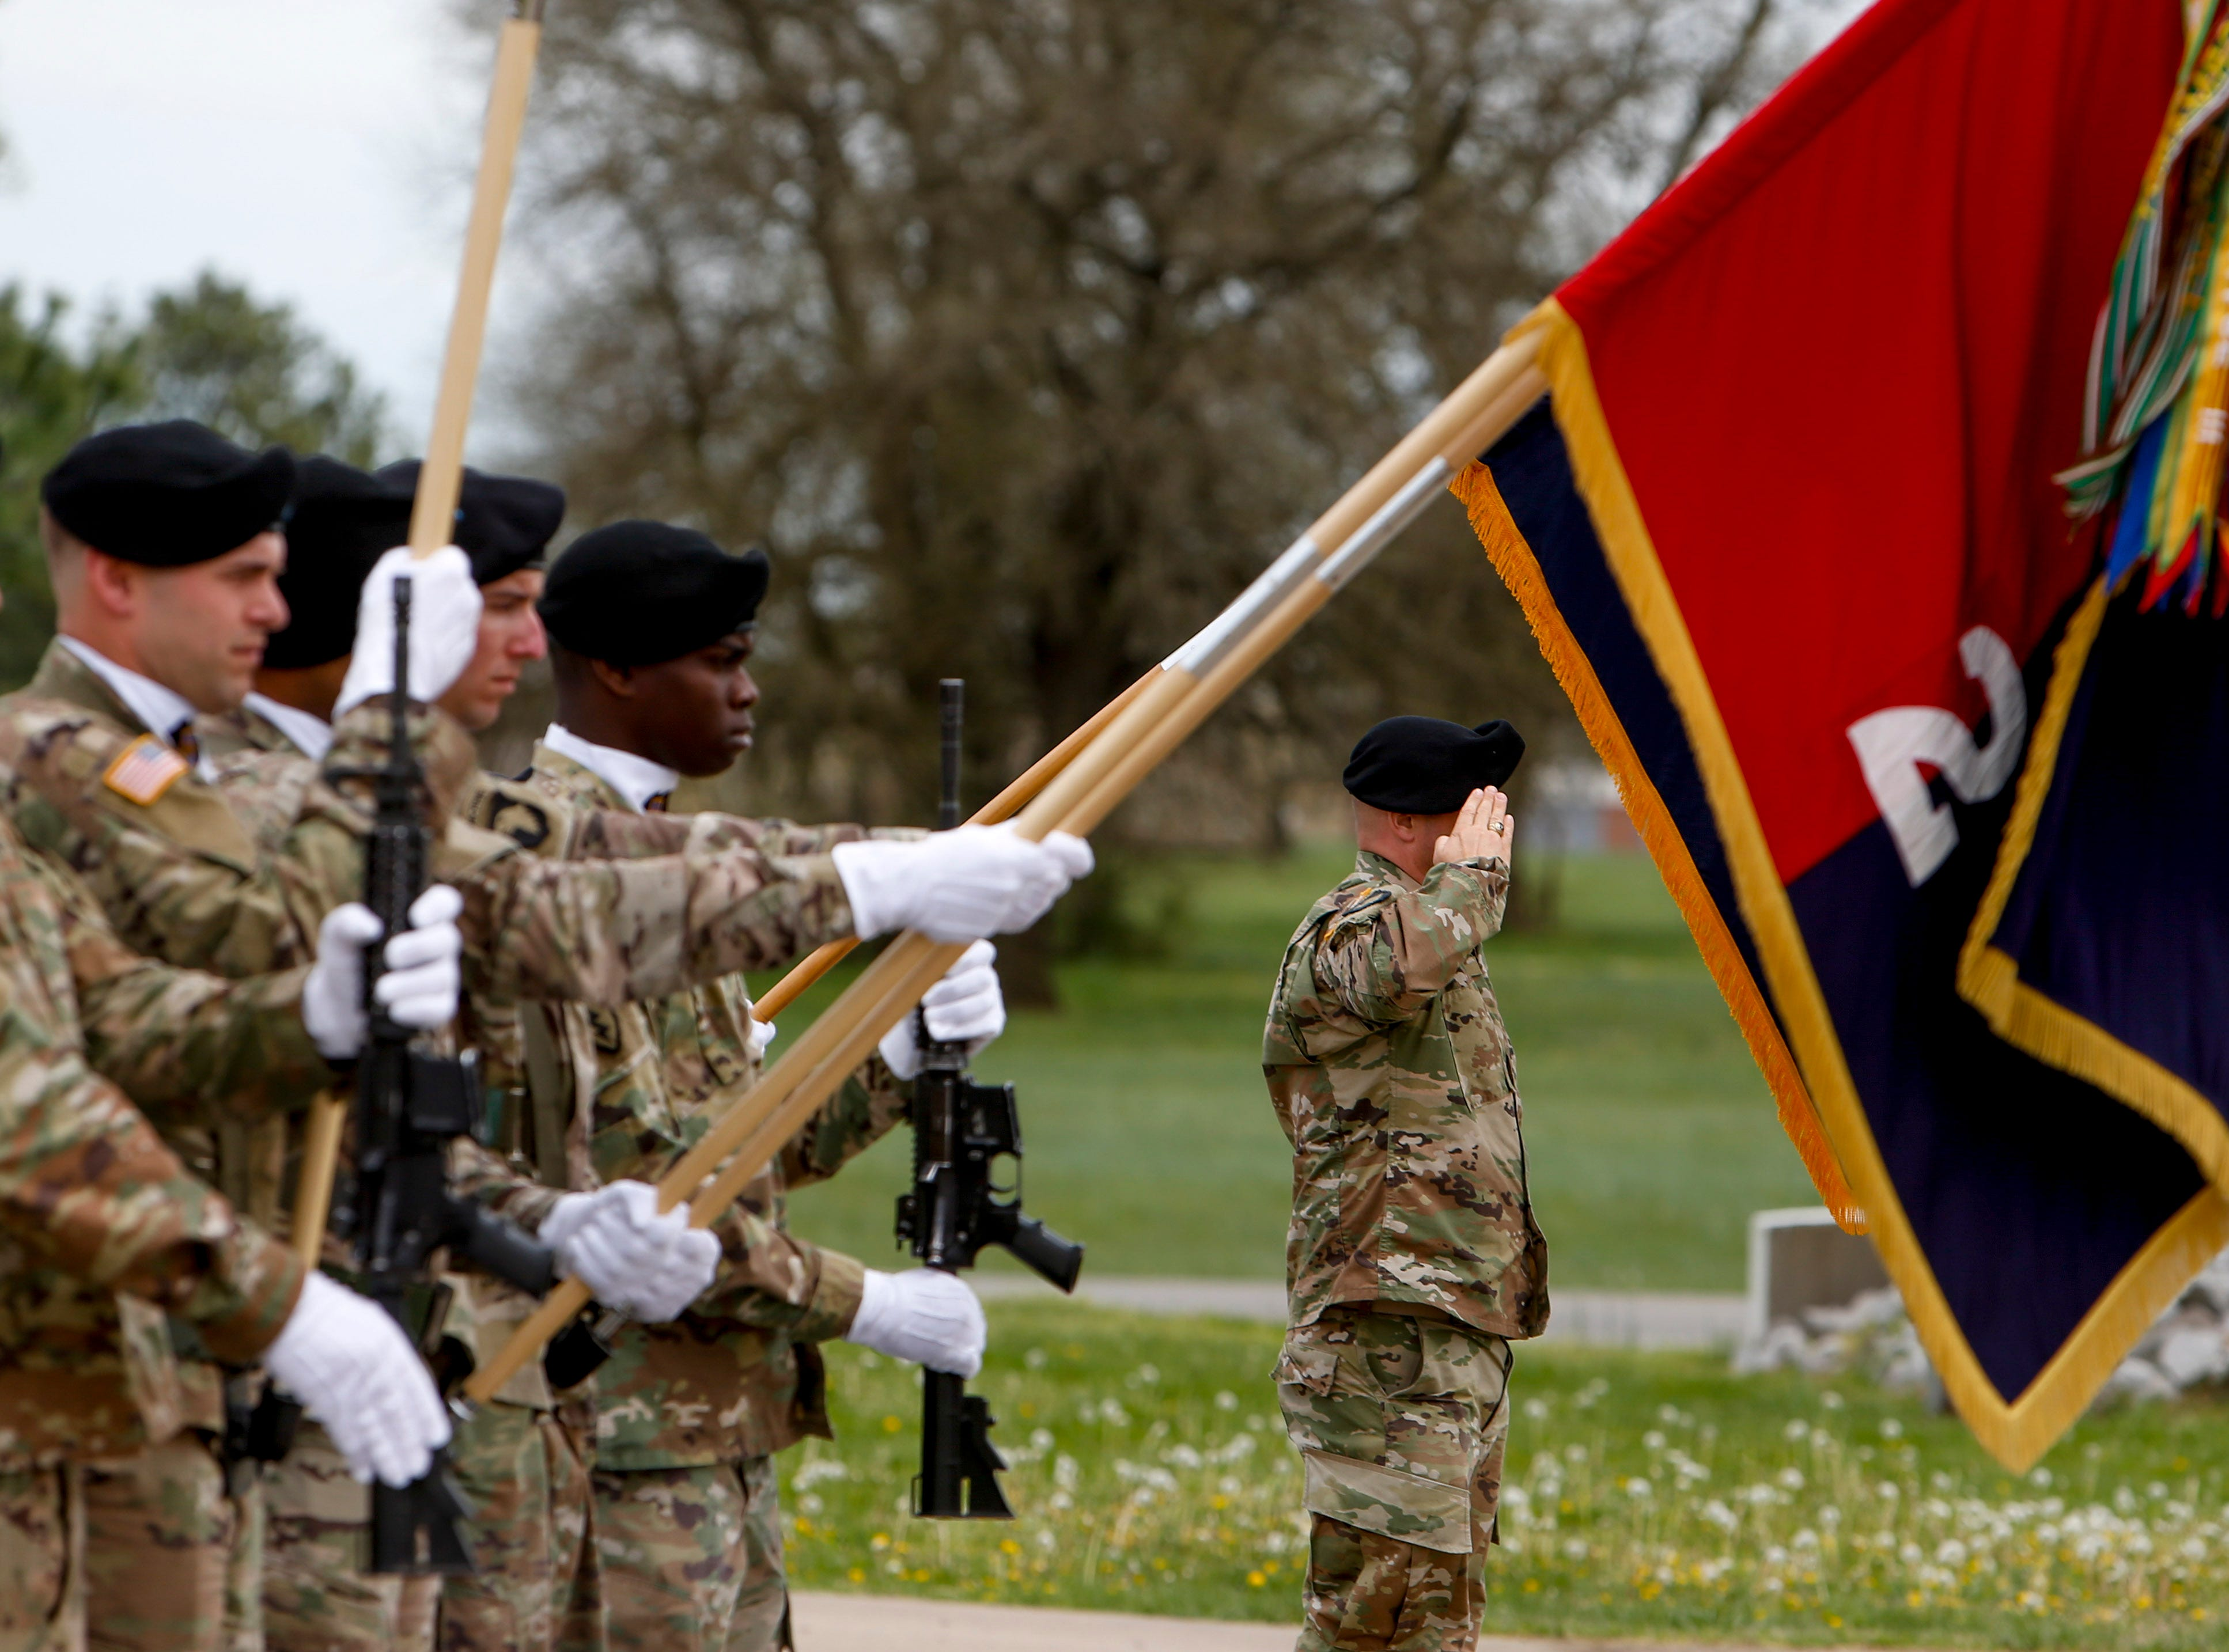 The colors are presented by the color guard during a colors casing ceremony prior to deployment for Ukraine at 2 BCT Headquarters in Fort Campbell, KY., on Friday, April 12, 2019.